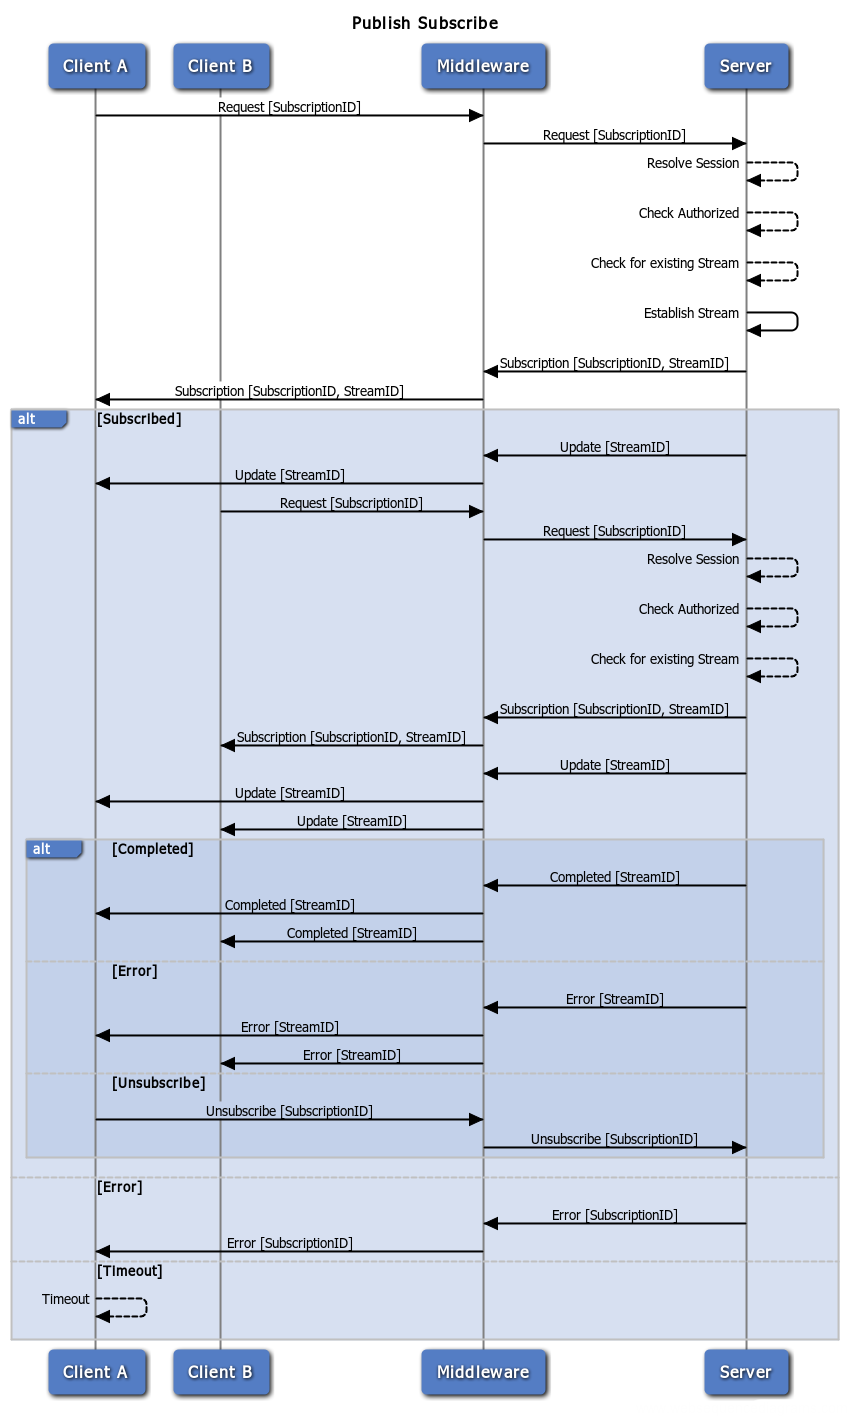 Publish Subscribe Sequence Diagram